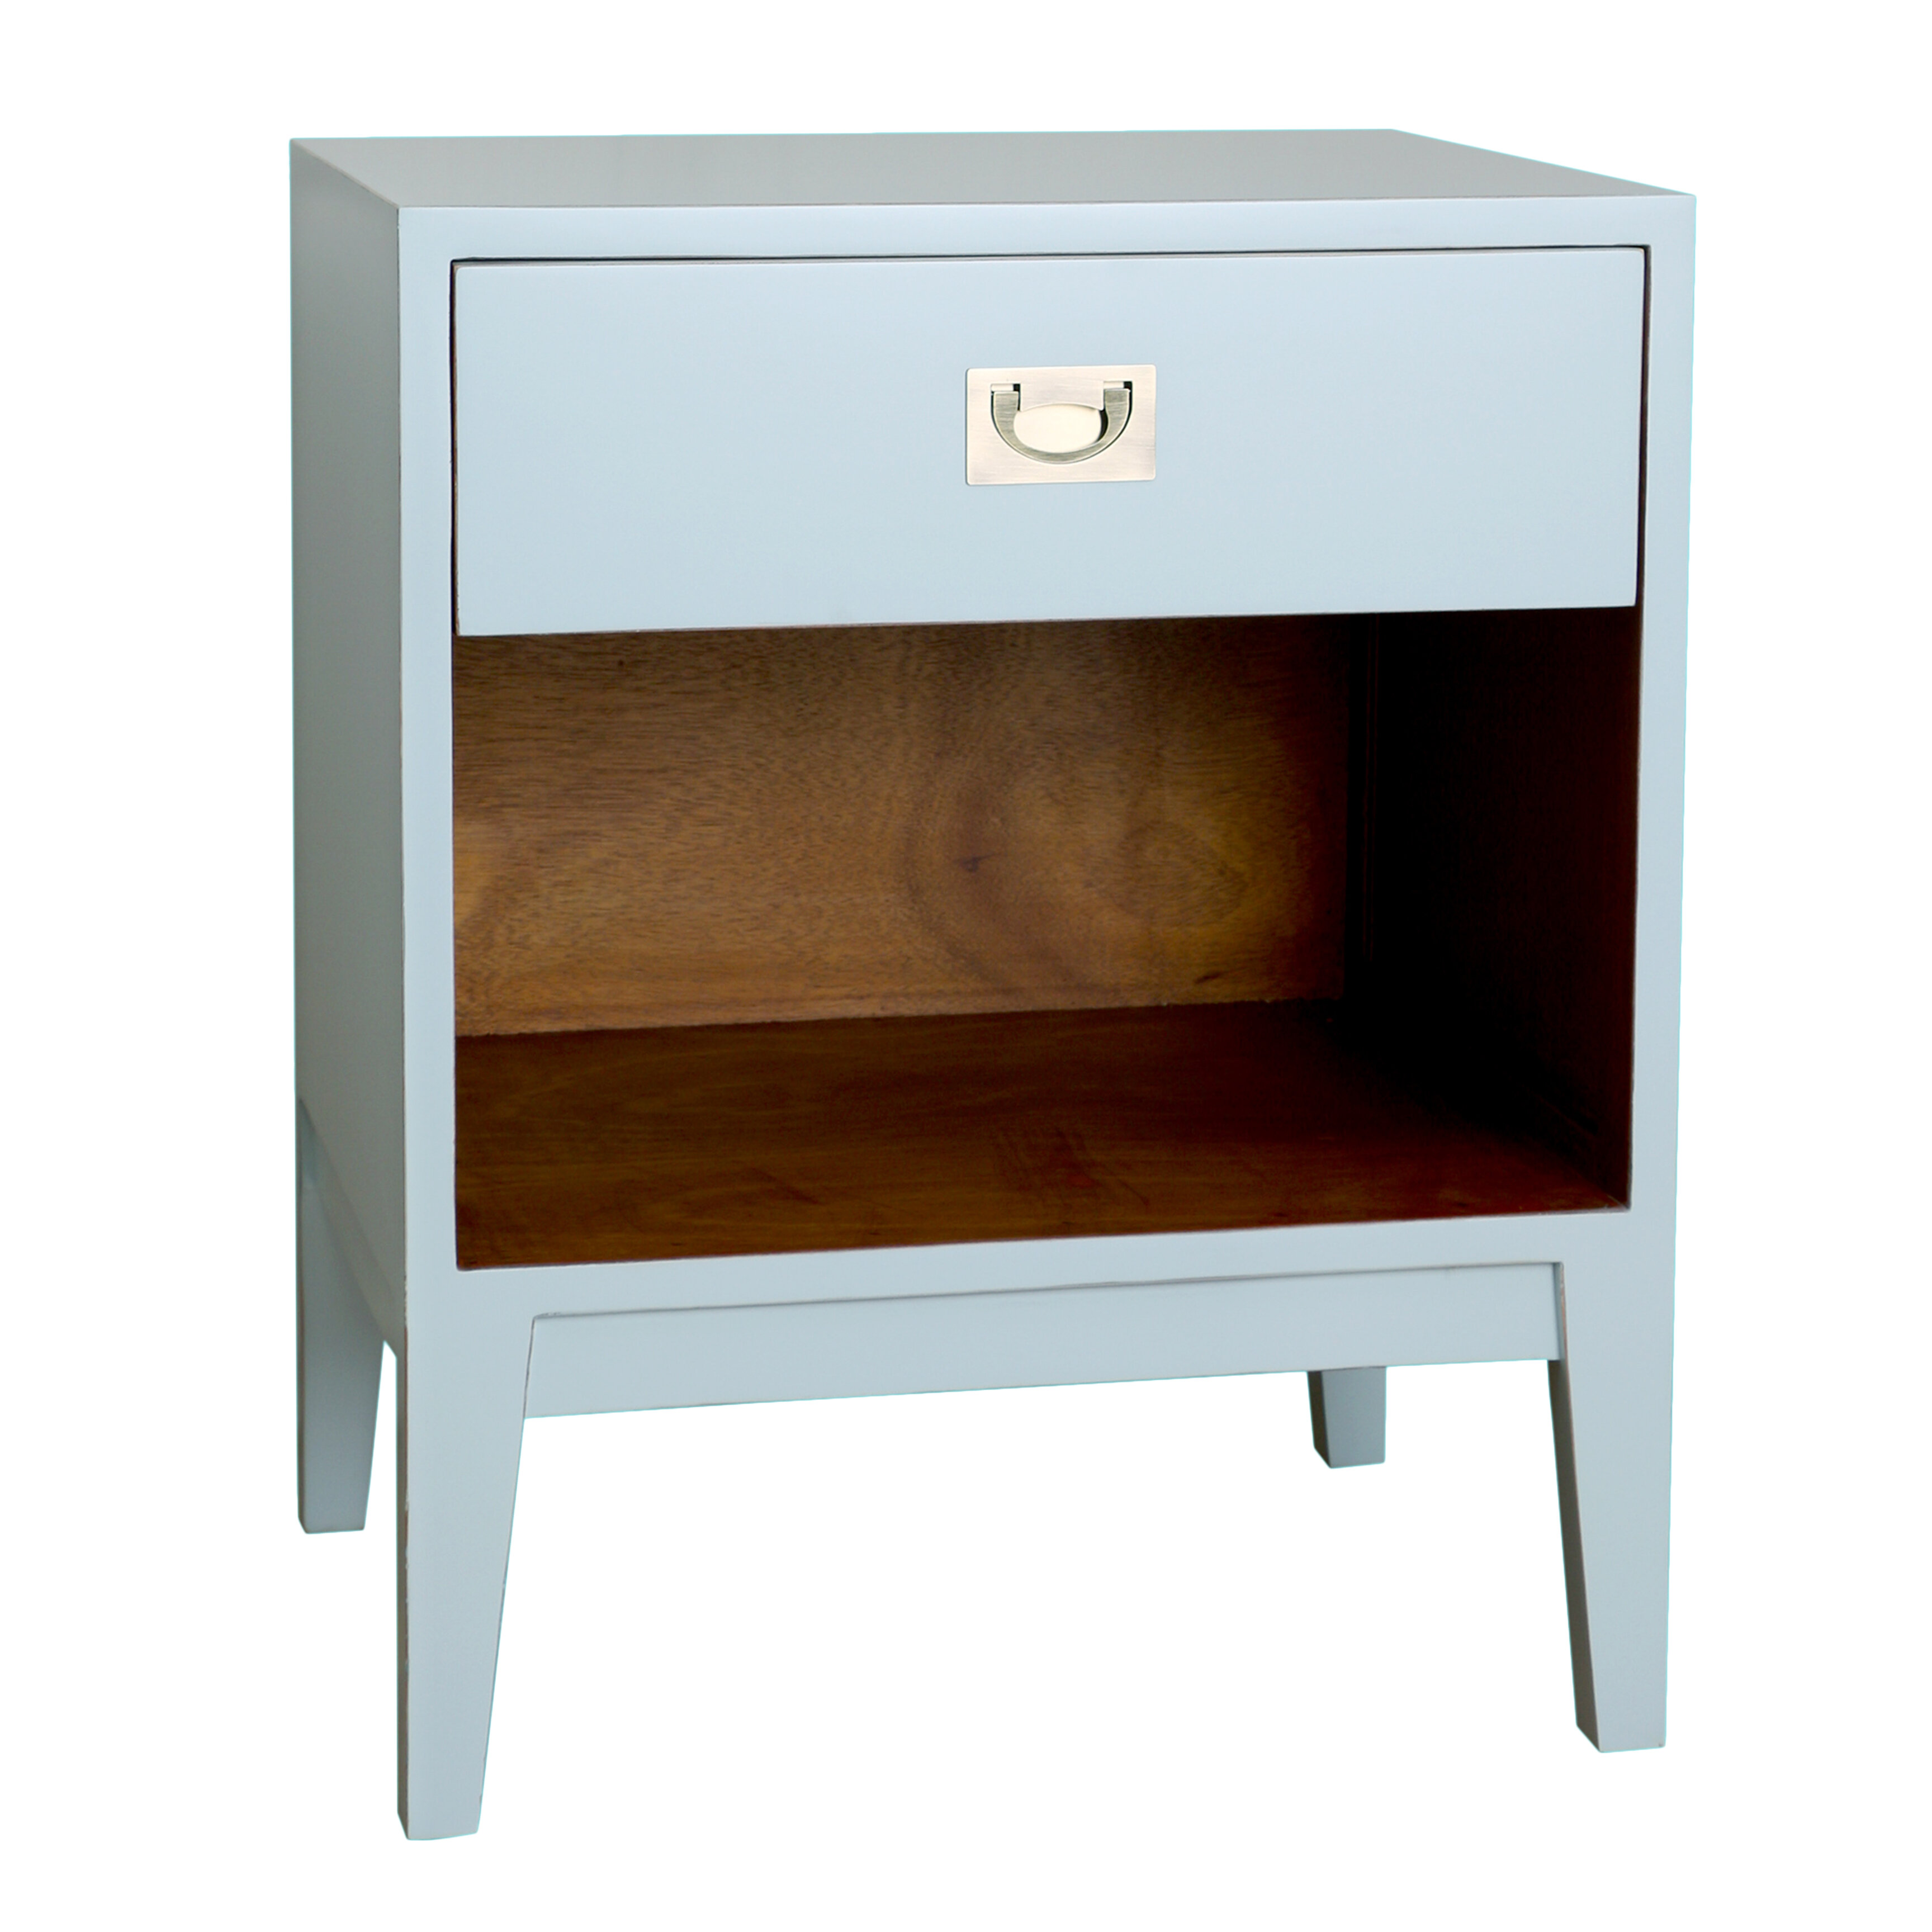 How to clean lacquer furniture White Lacquer Kuchniauani Bungalow Rose Reinaldo Lacquer Nightstand Reviews Wayfair